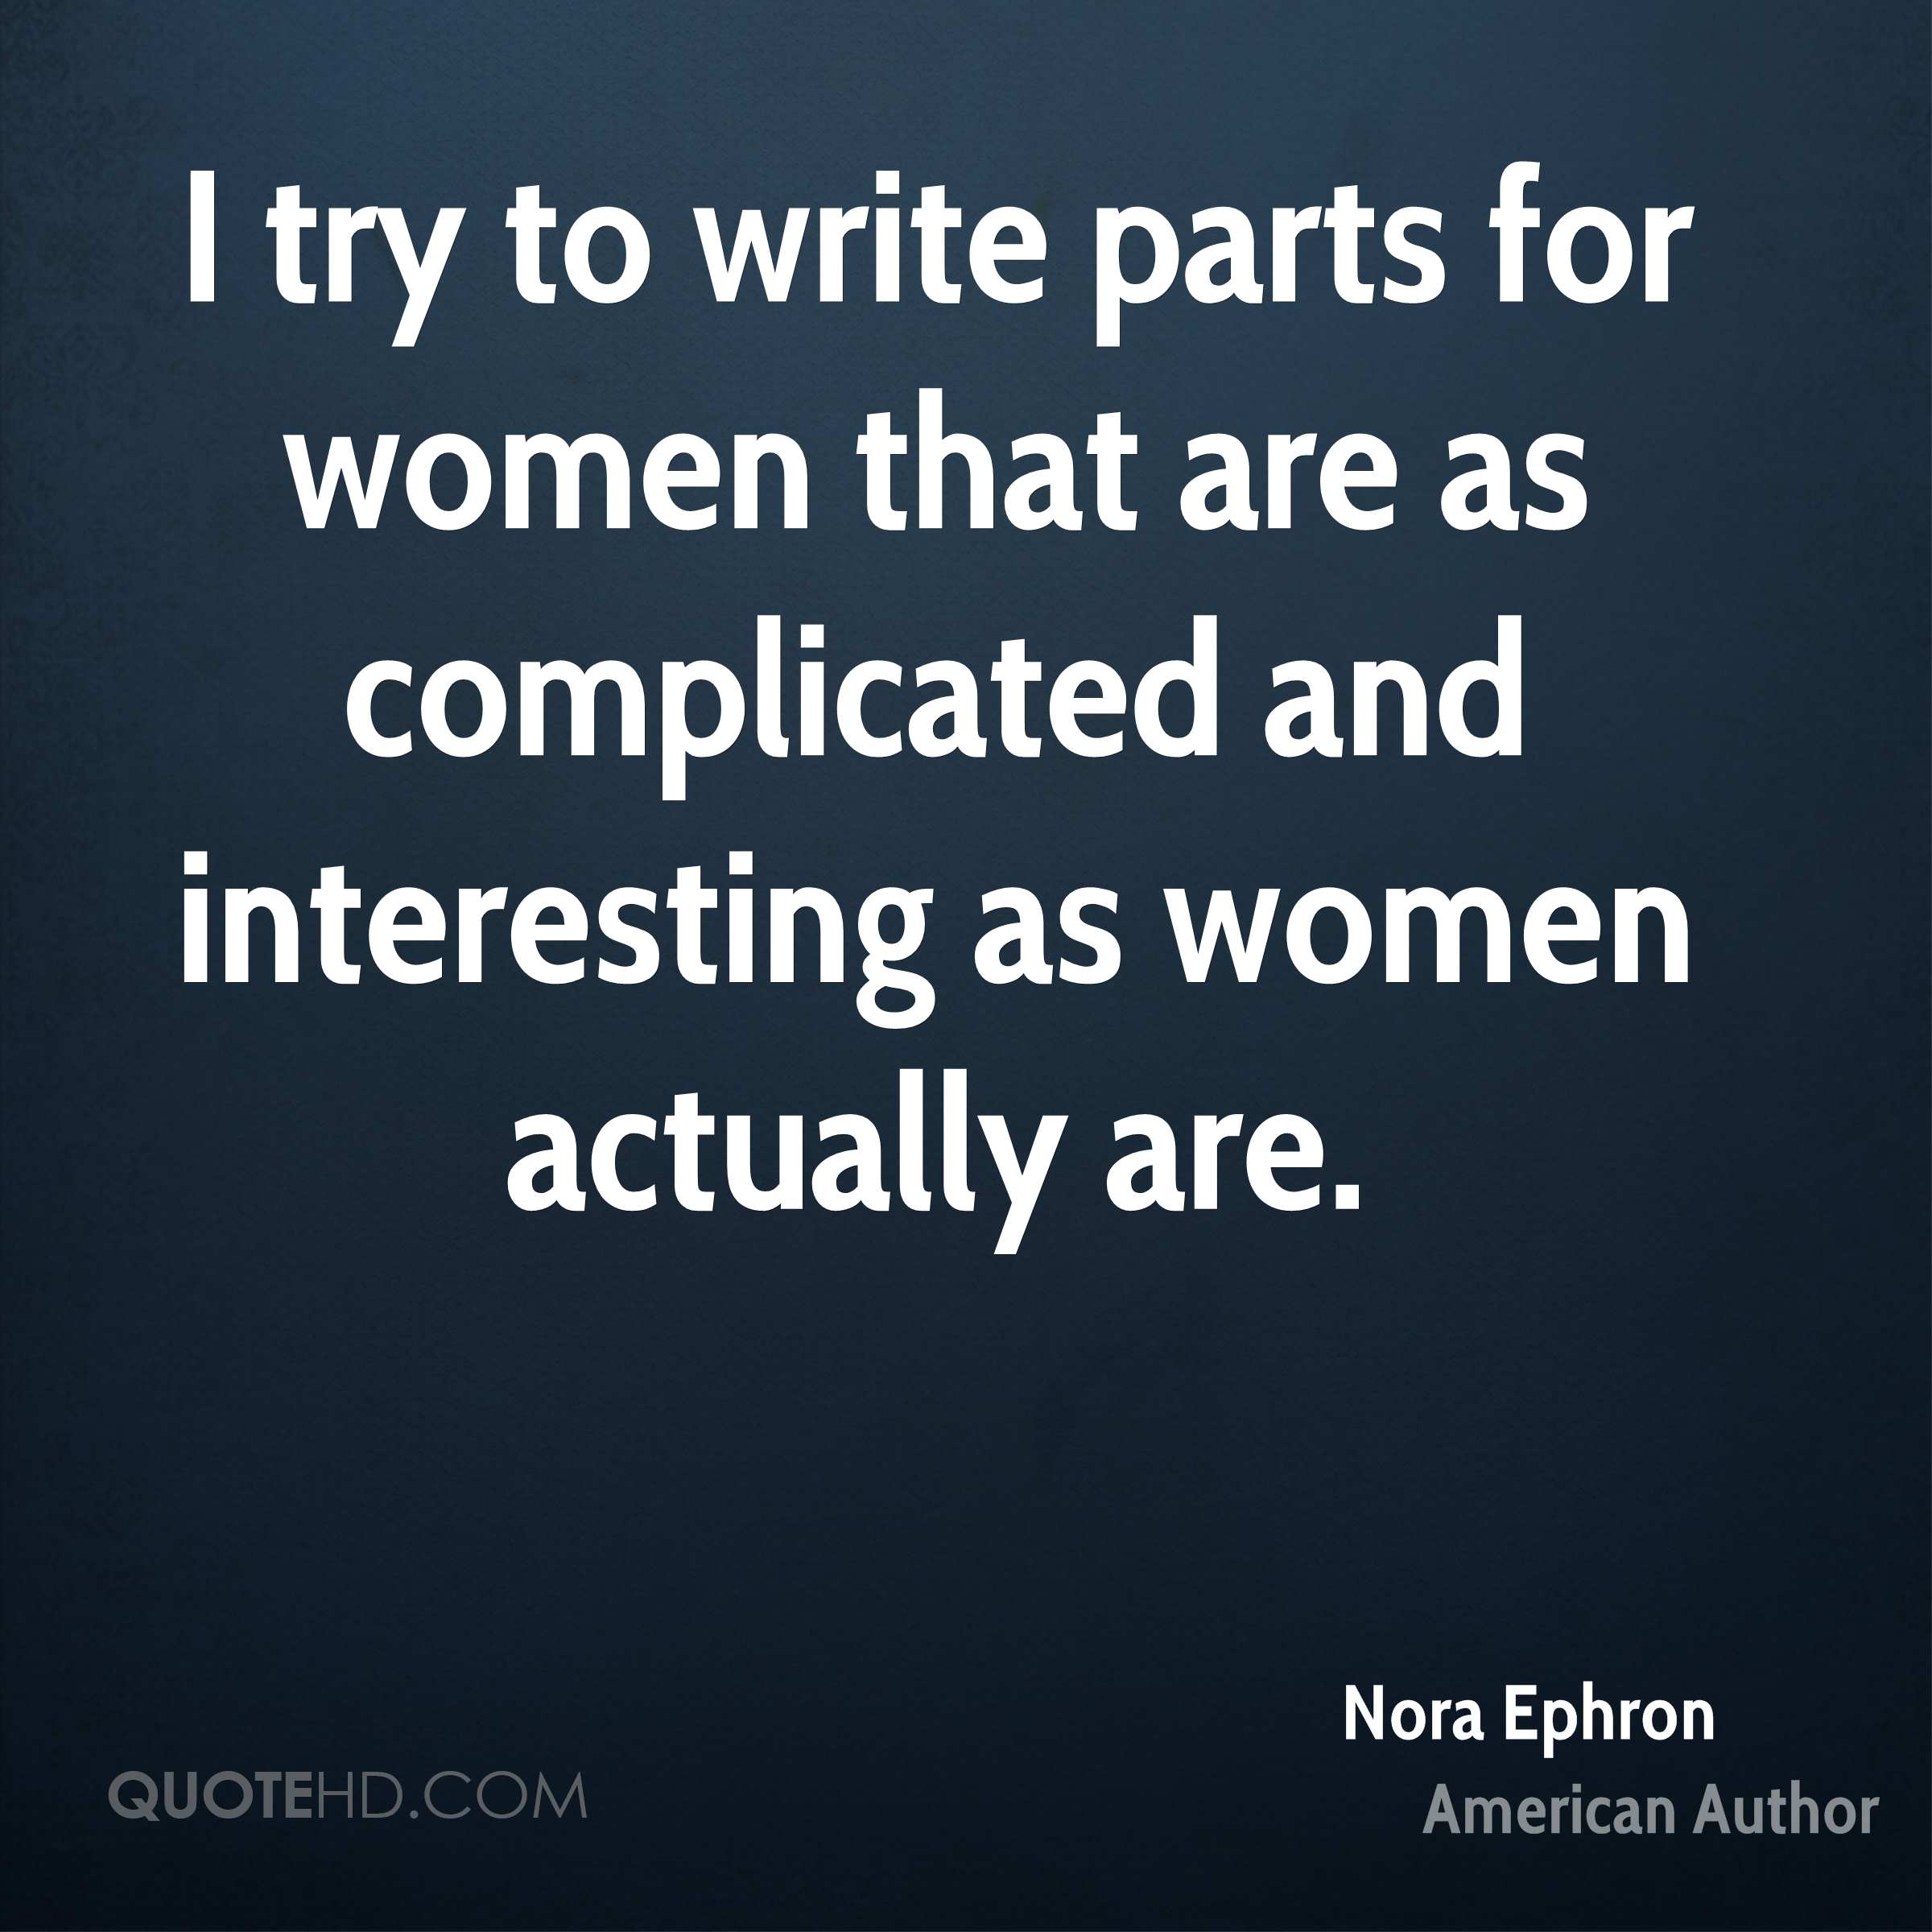 I try to write parts for women that are as complicated and interesting as women actually are.